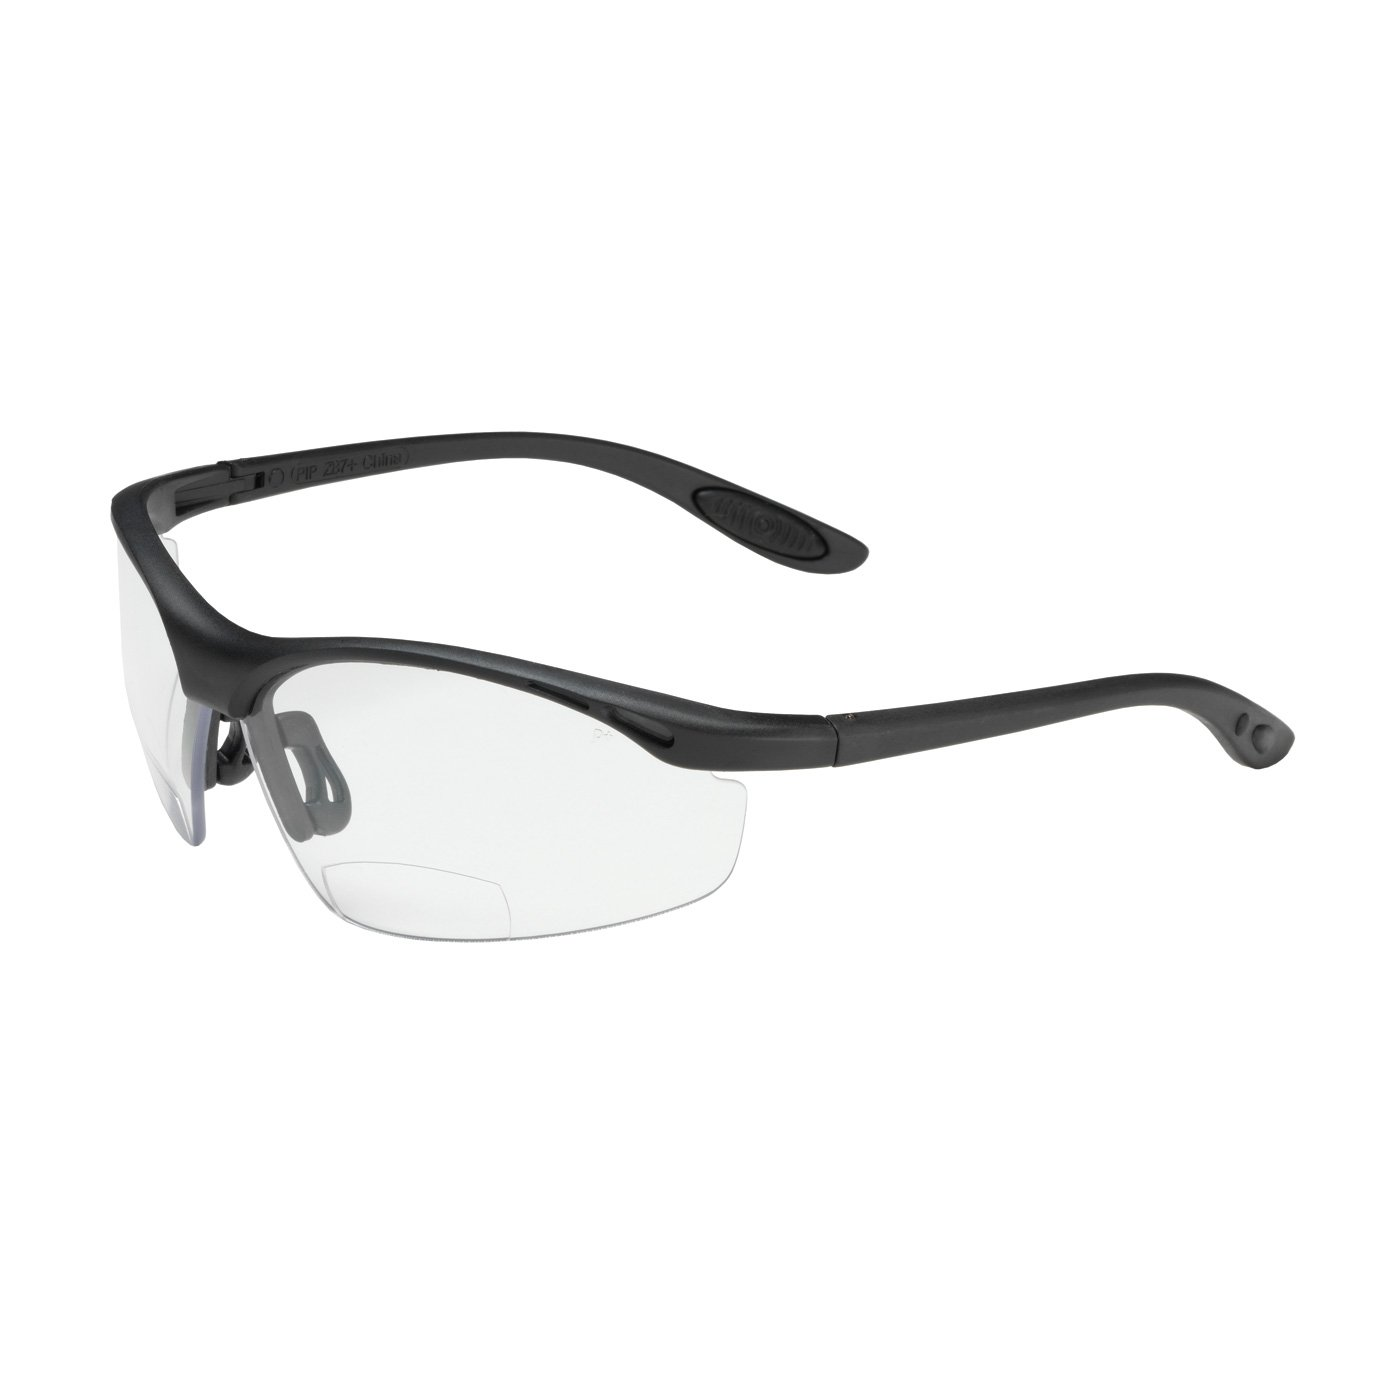 Mag Readers 250-25-0010 Semi-Rimless Safety Readers with Black Frame, Clear Lens and Anti-Scratch Coating - +1.00 Diopter